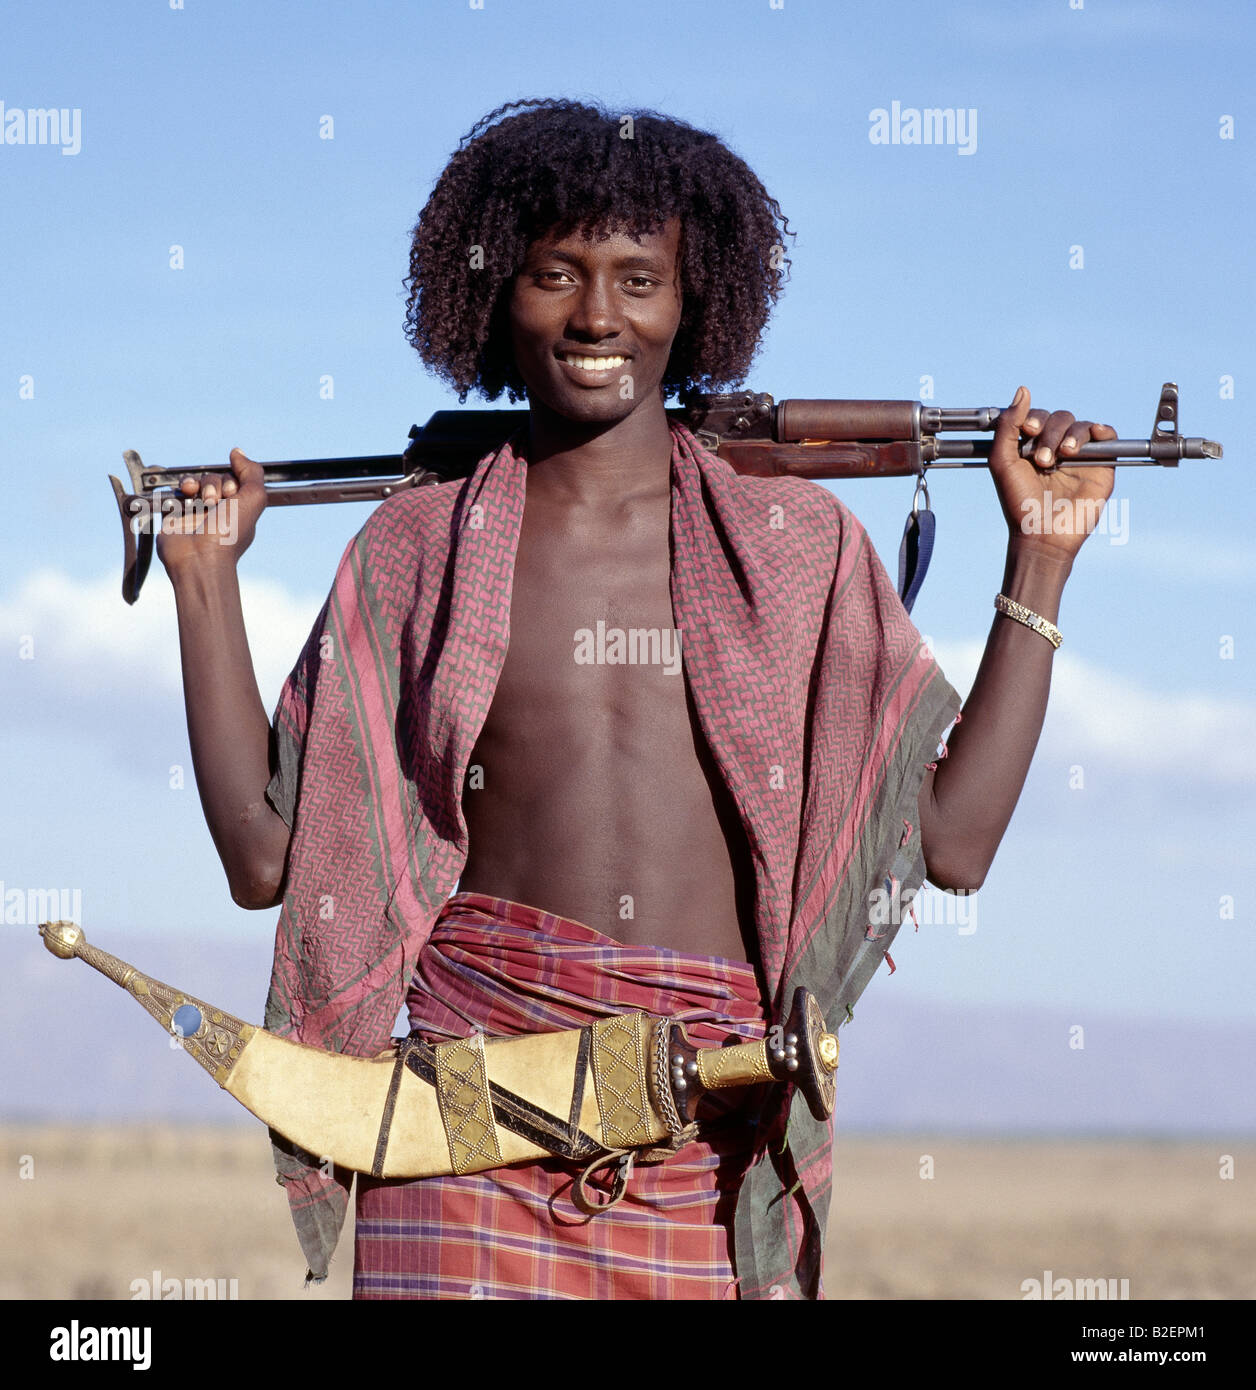 Warriors of the nomadic Afar tribe wear their hair long and carry large curved daggers, known as jile, strapped - Stock Image